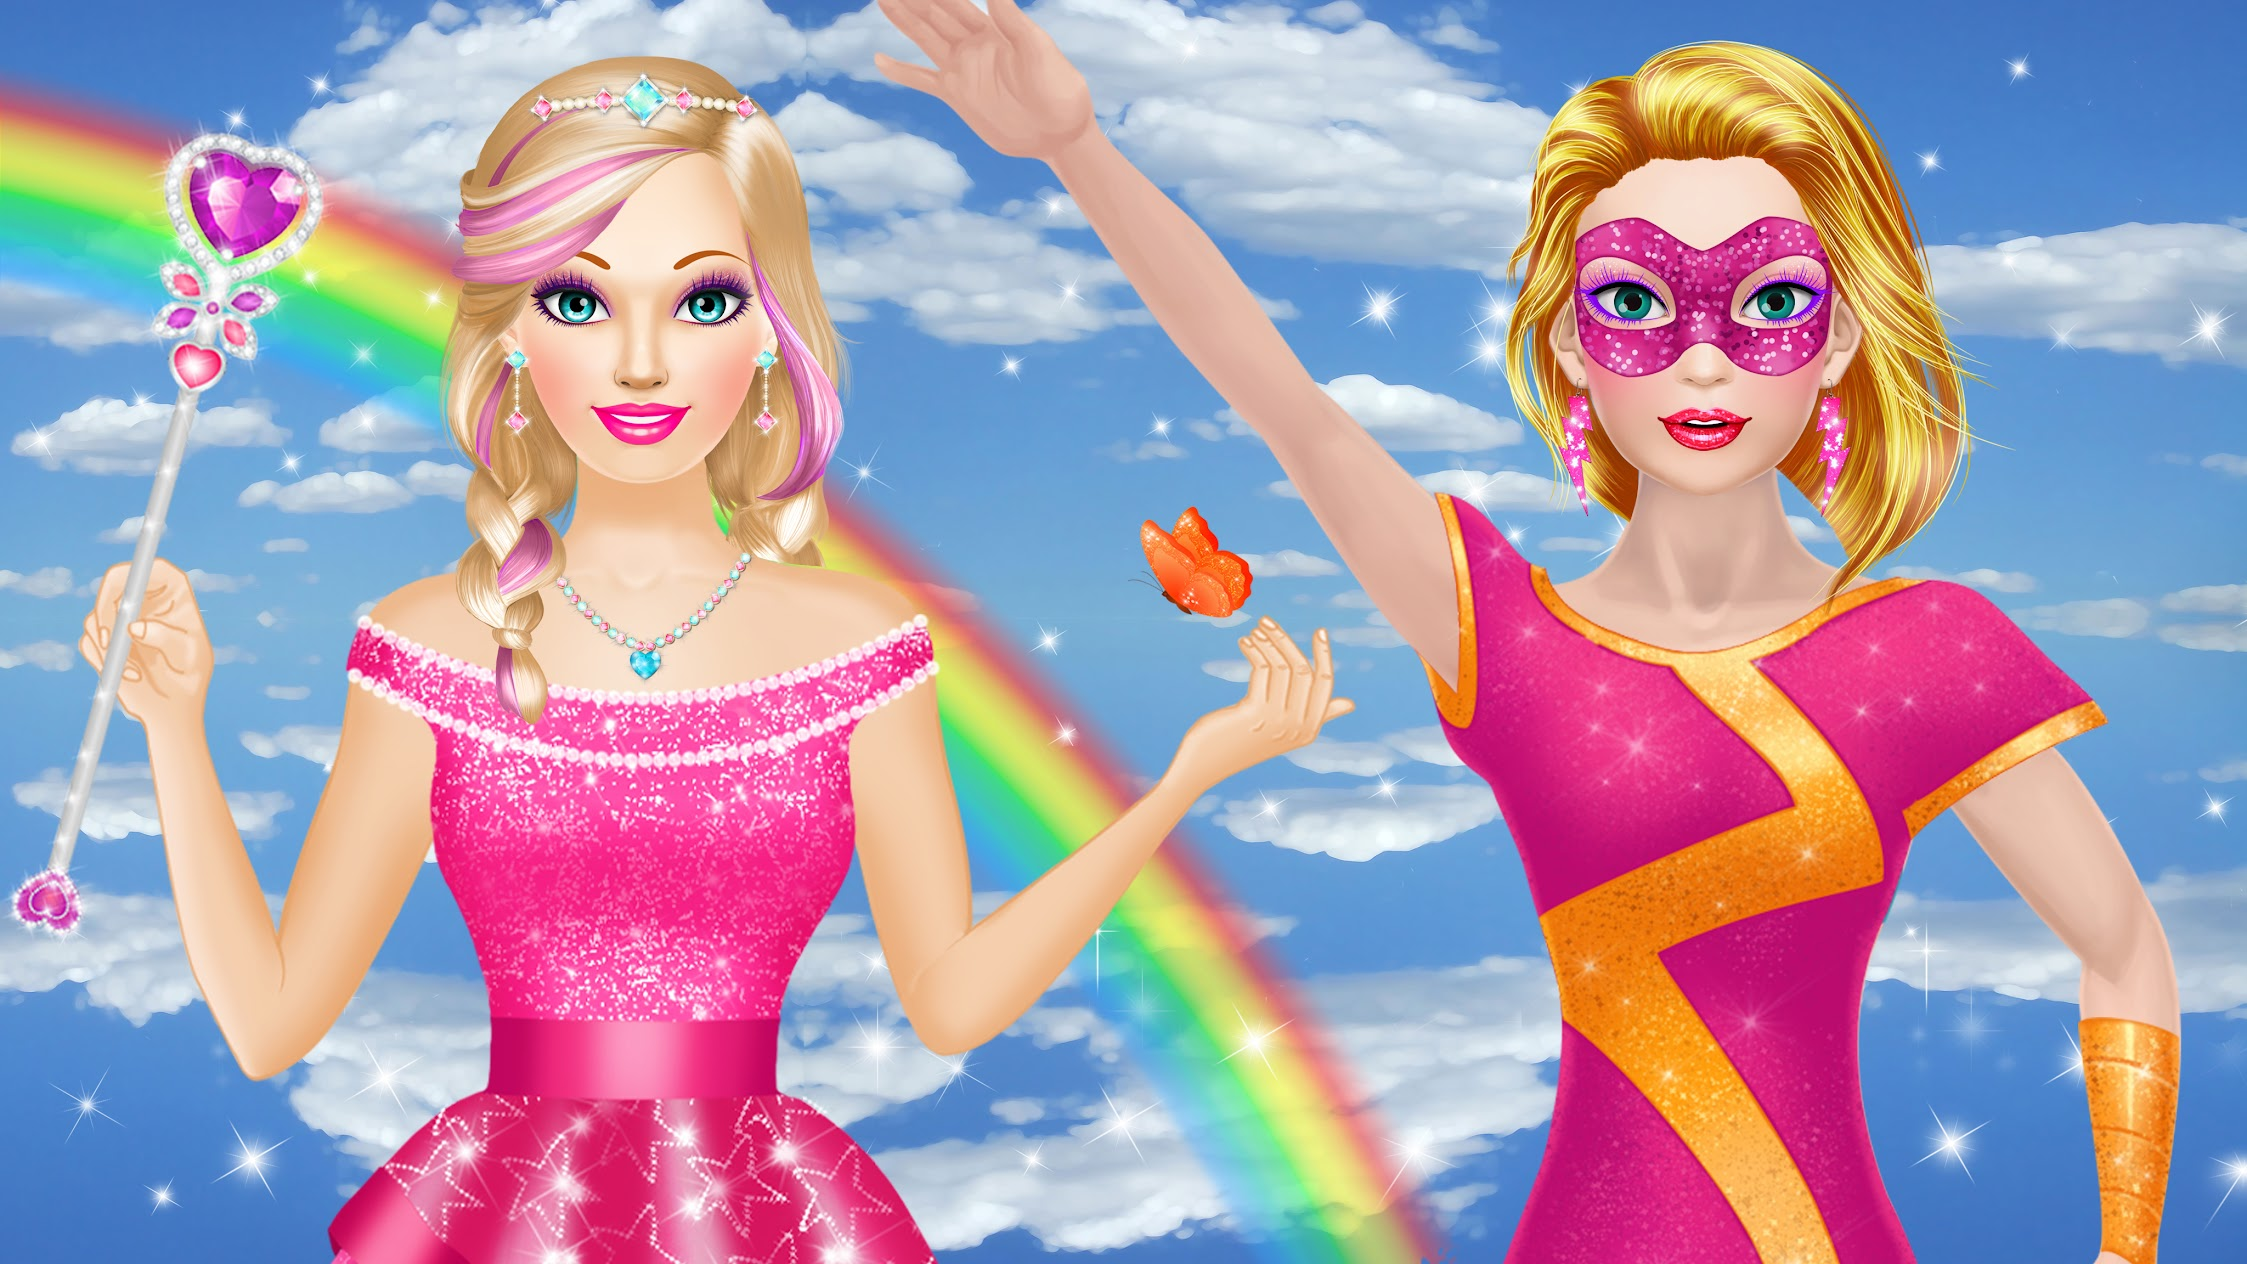 Peachy Games - Makeup and Dress Up Games for Girls